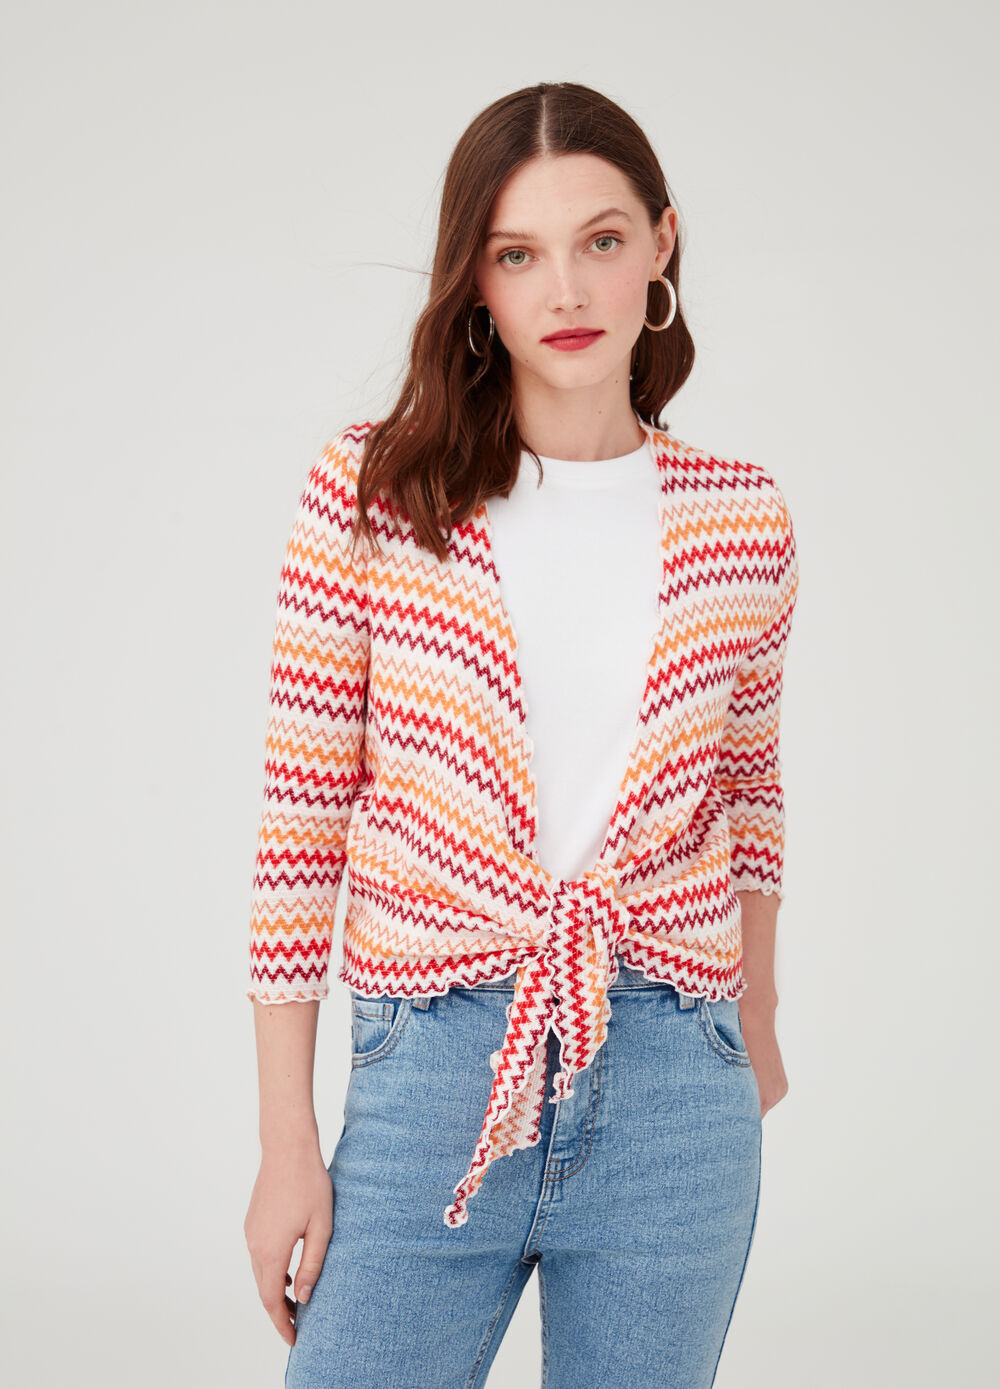 Cardigan with belt at the waist and pattern